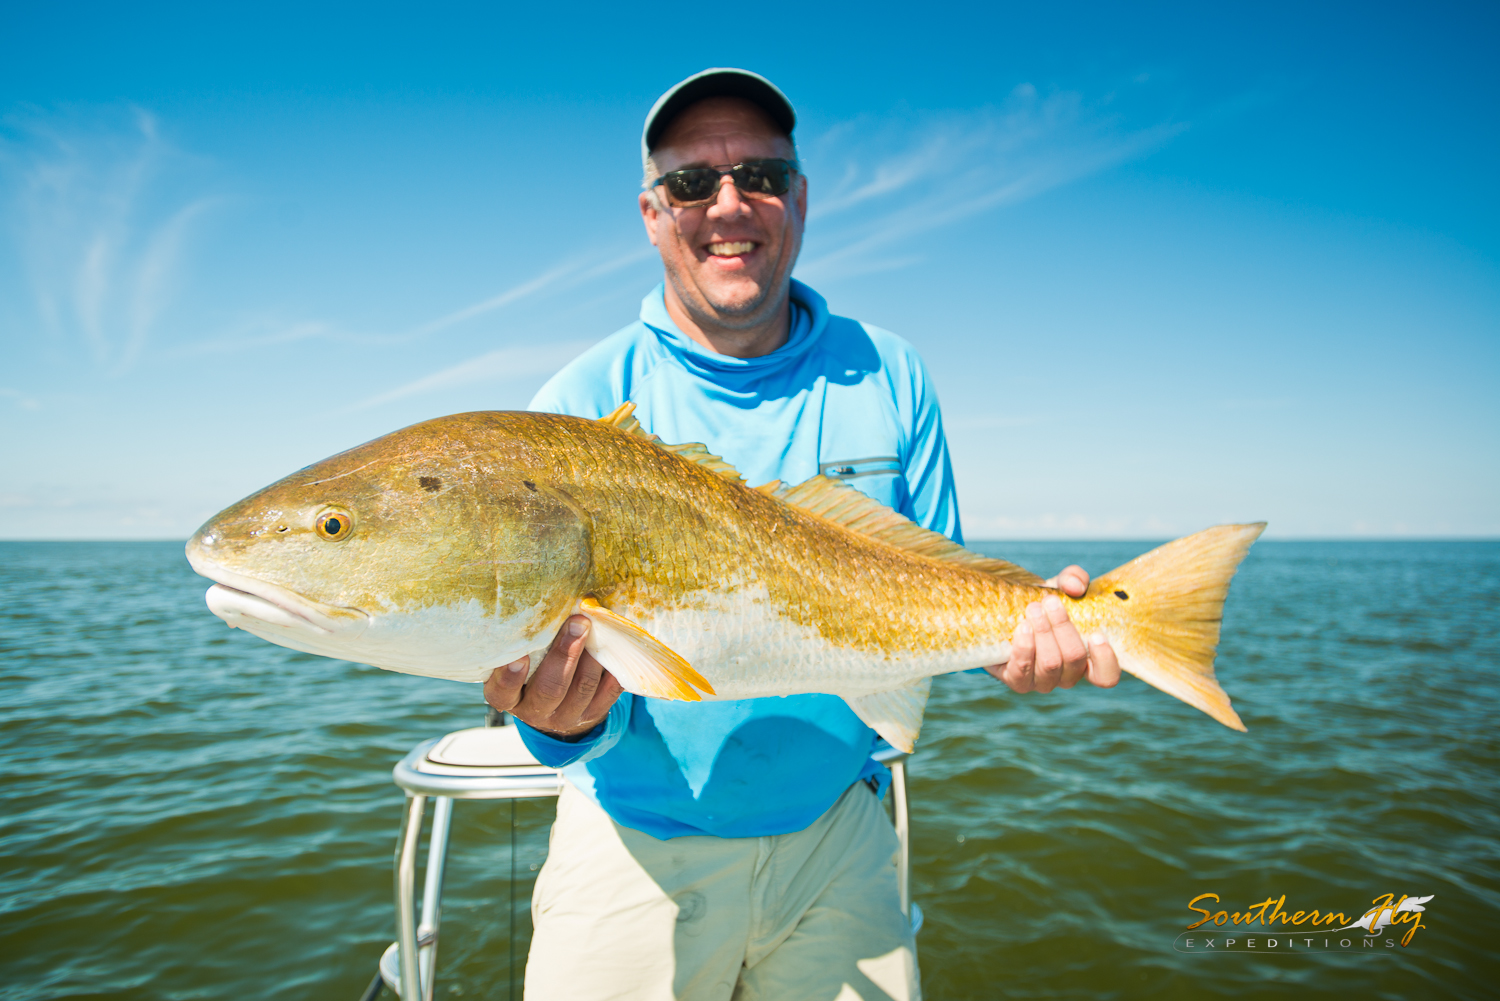 Best Spin Fishing Guide Delacroix Southern Fly Expeditions